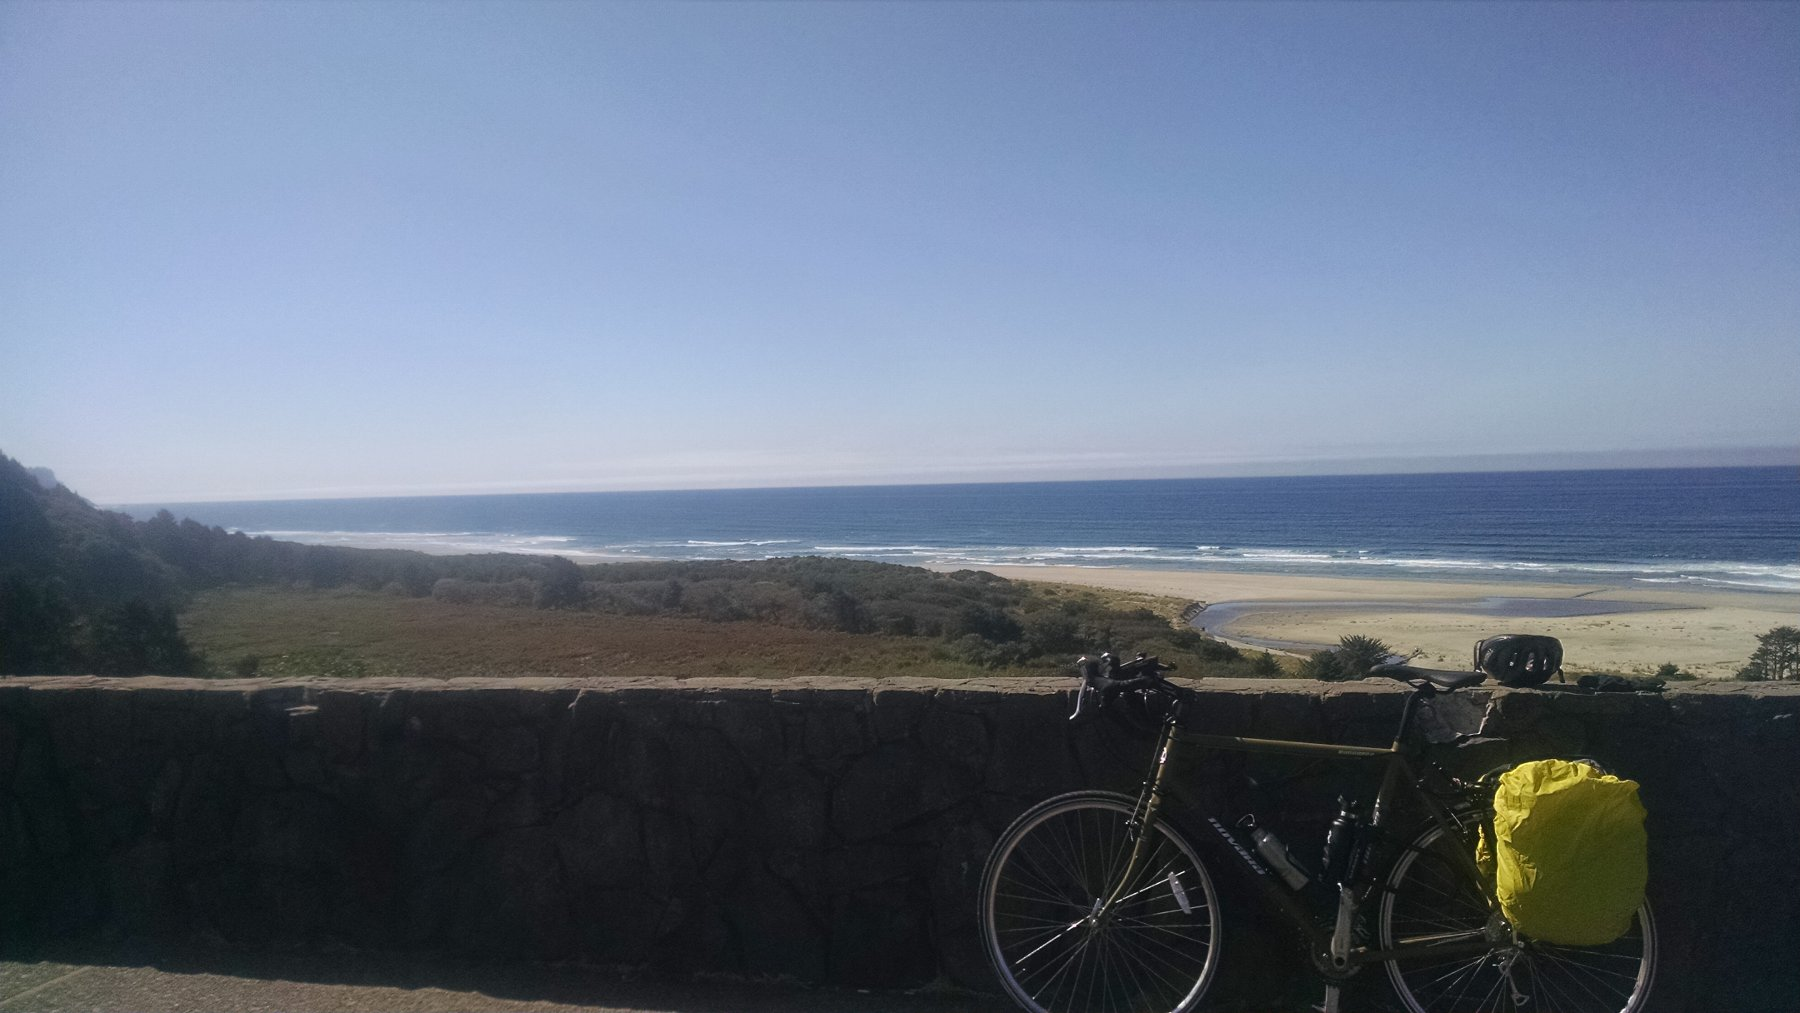 My bike with a coastal view